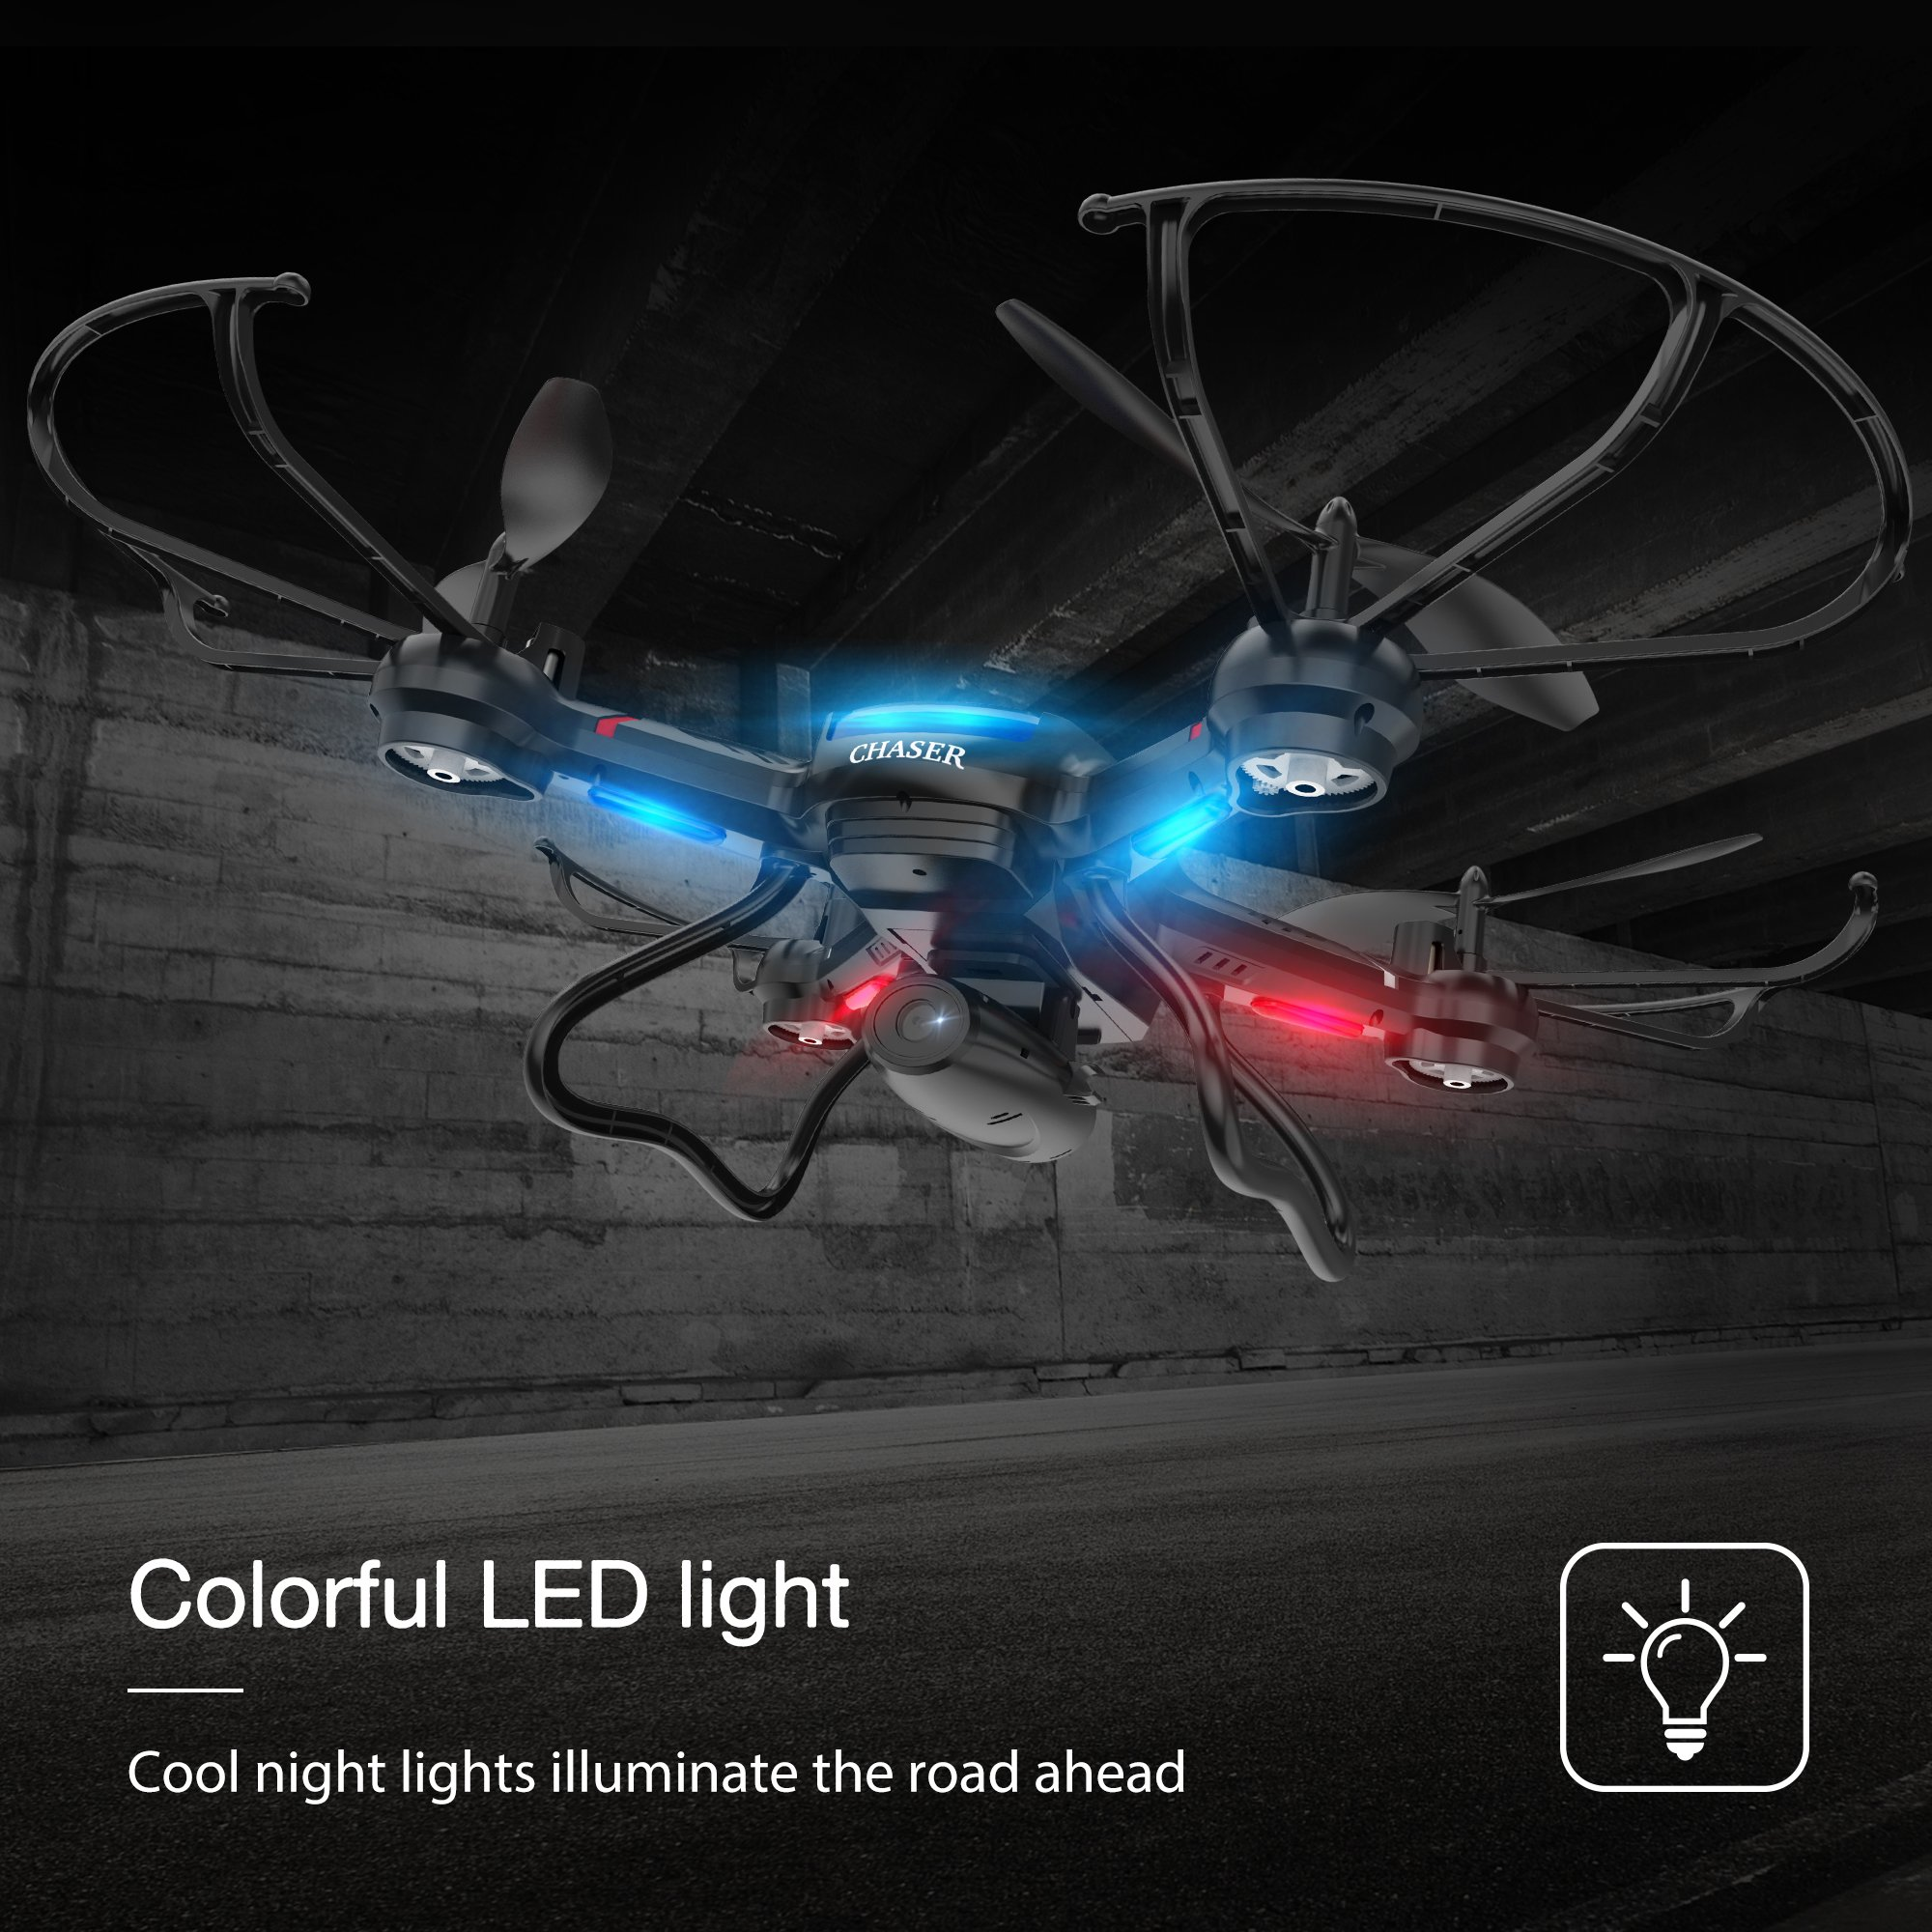 Holy Stone F181W Wifi FPV Drone with 720P Wide-Angle HD Camera Live Video RC Quadcopter with Altitude Hold, Gravity Sensor Function, RTF and Easy to Fly for Beginner, Compatible with VR Headset by Holy Stone (Image #6)